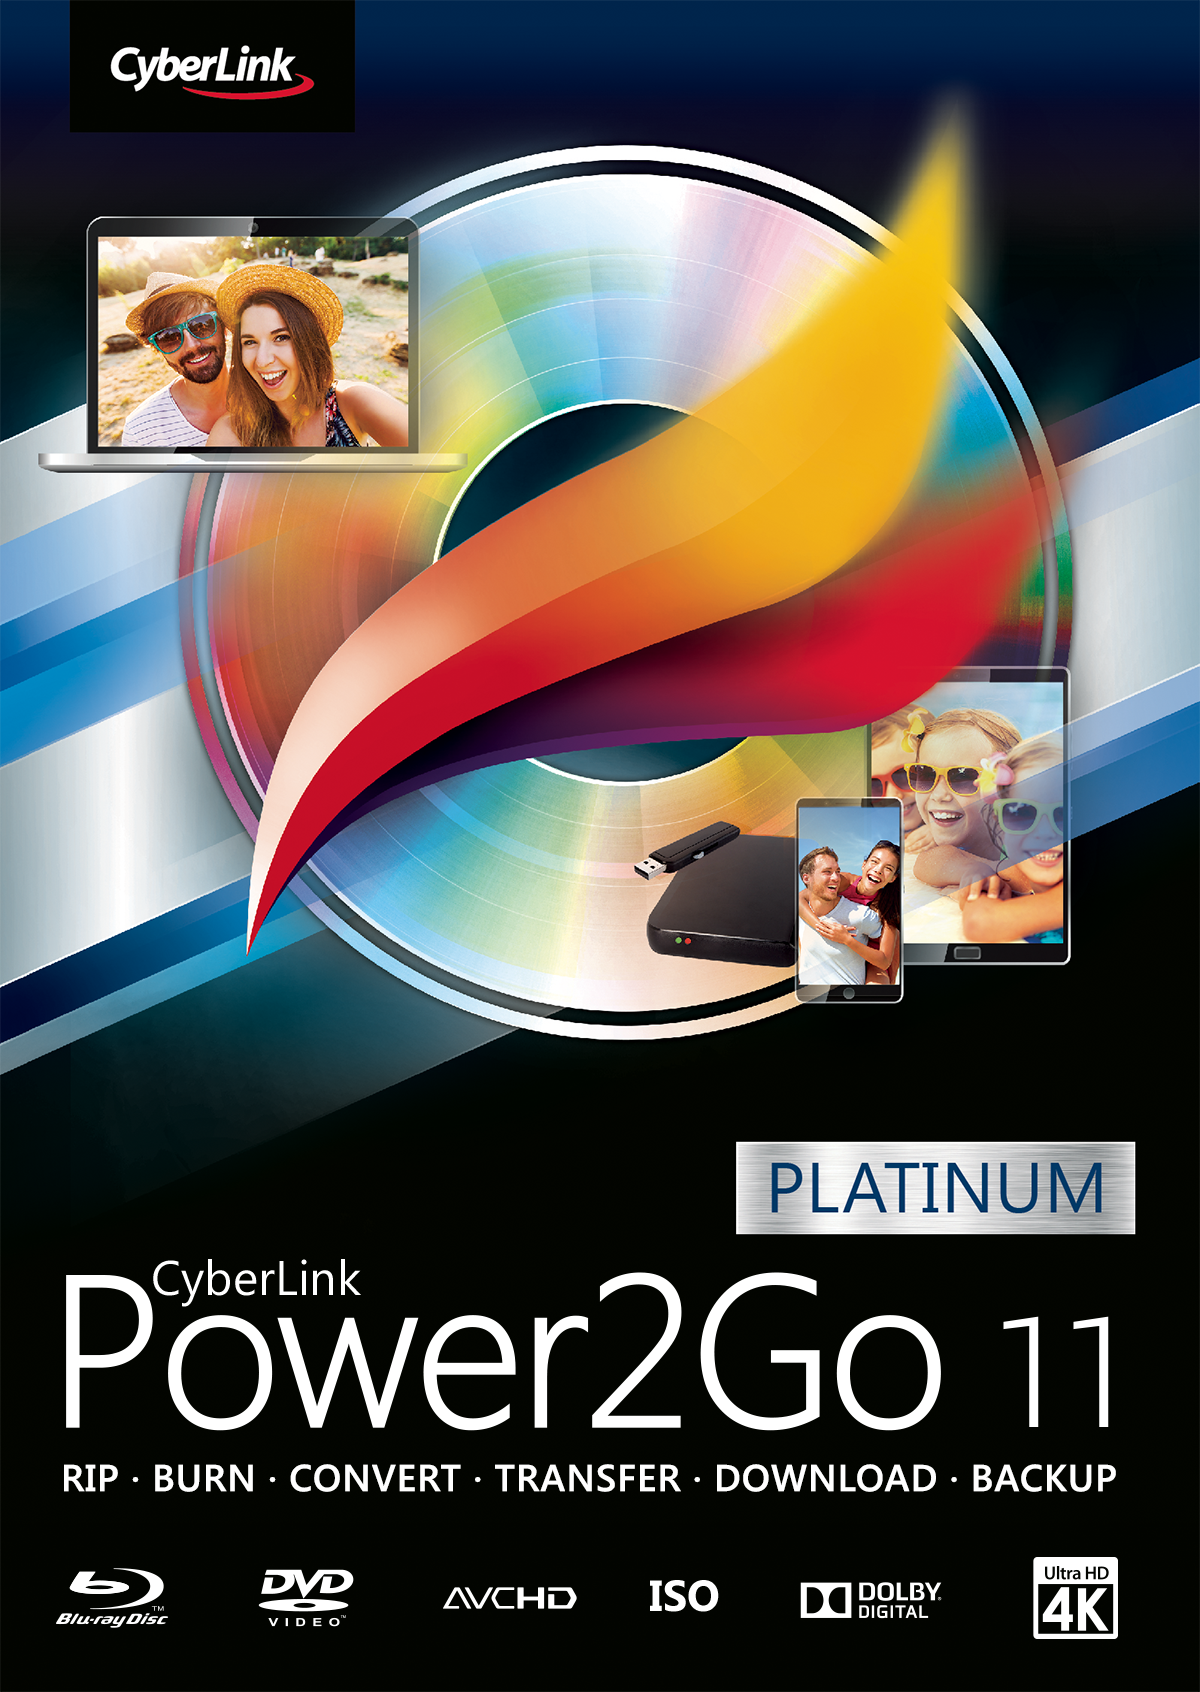 Cyberlink Power2Go 11 Platinum